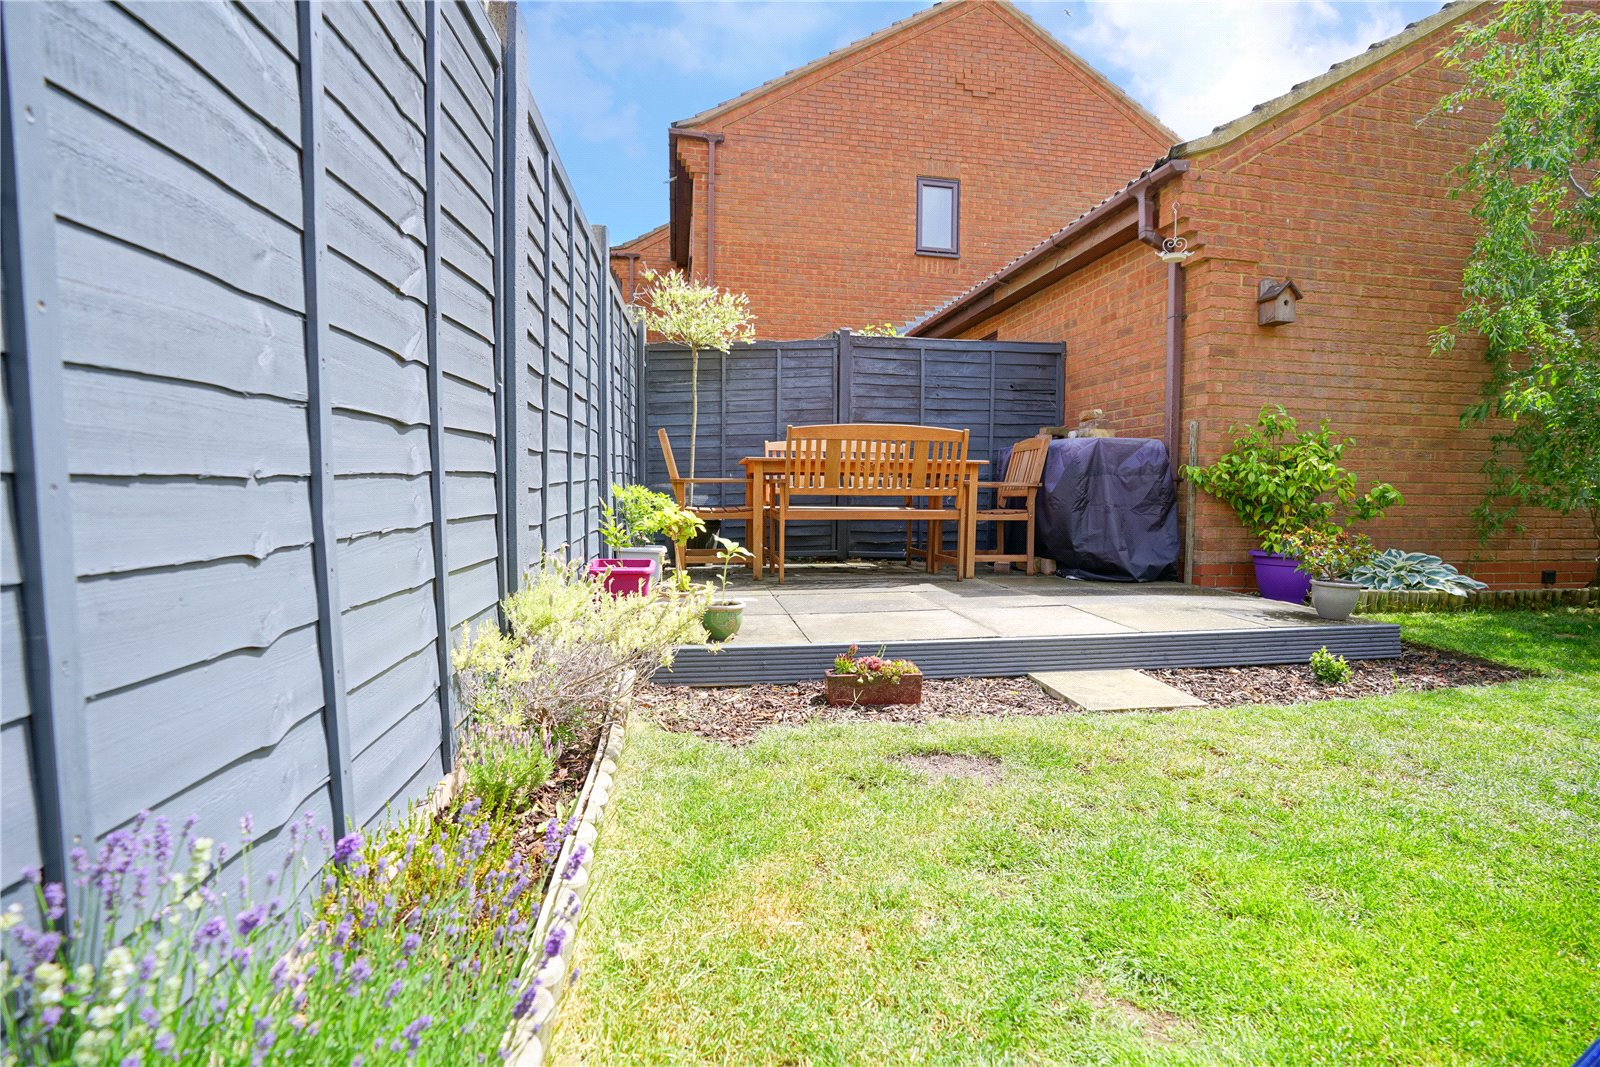 3 bed house for sale in Swift Close, St. Neots  - Property Image 8